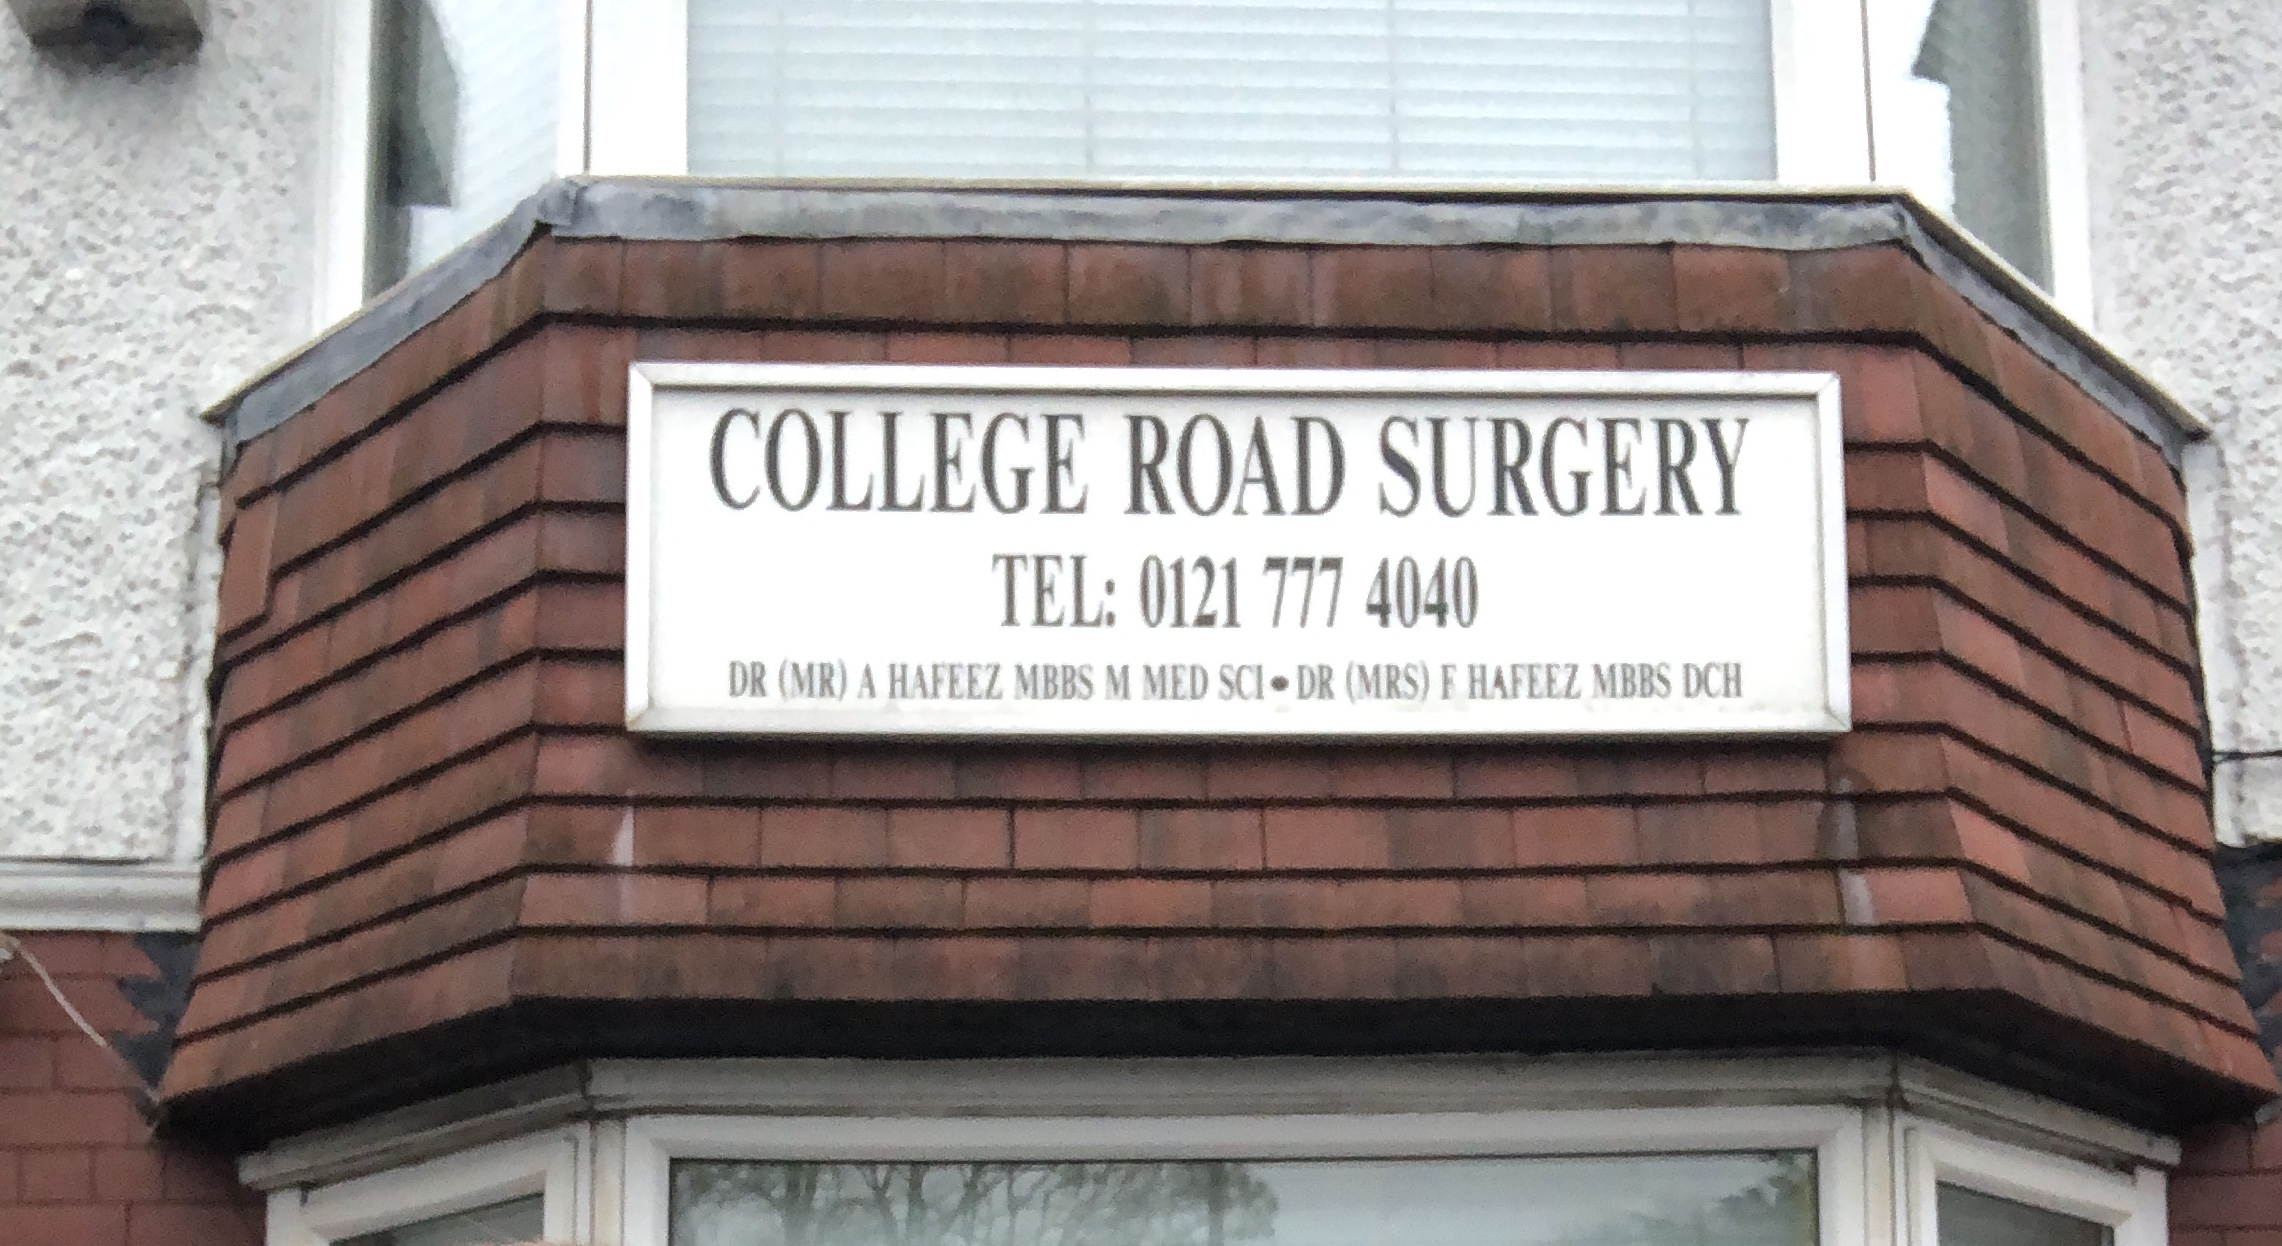 College Rd Surgery